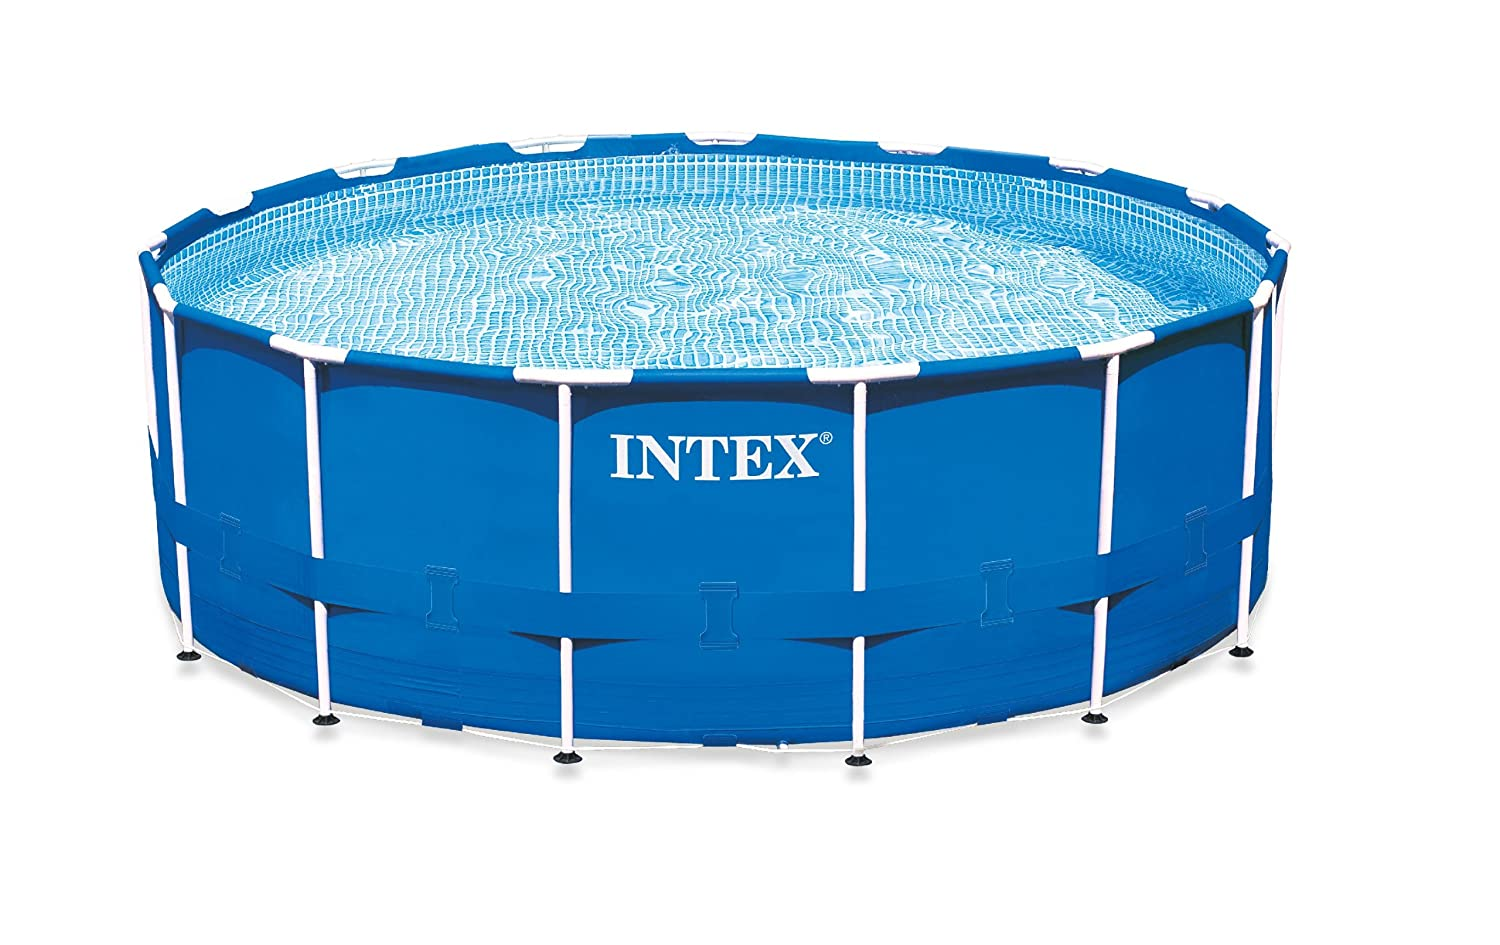 amazoncom intex metal frame pool set 15 feet x 42 inch sports outdoors - Intex Pools